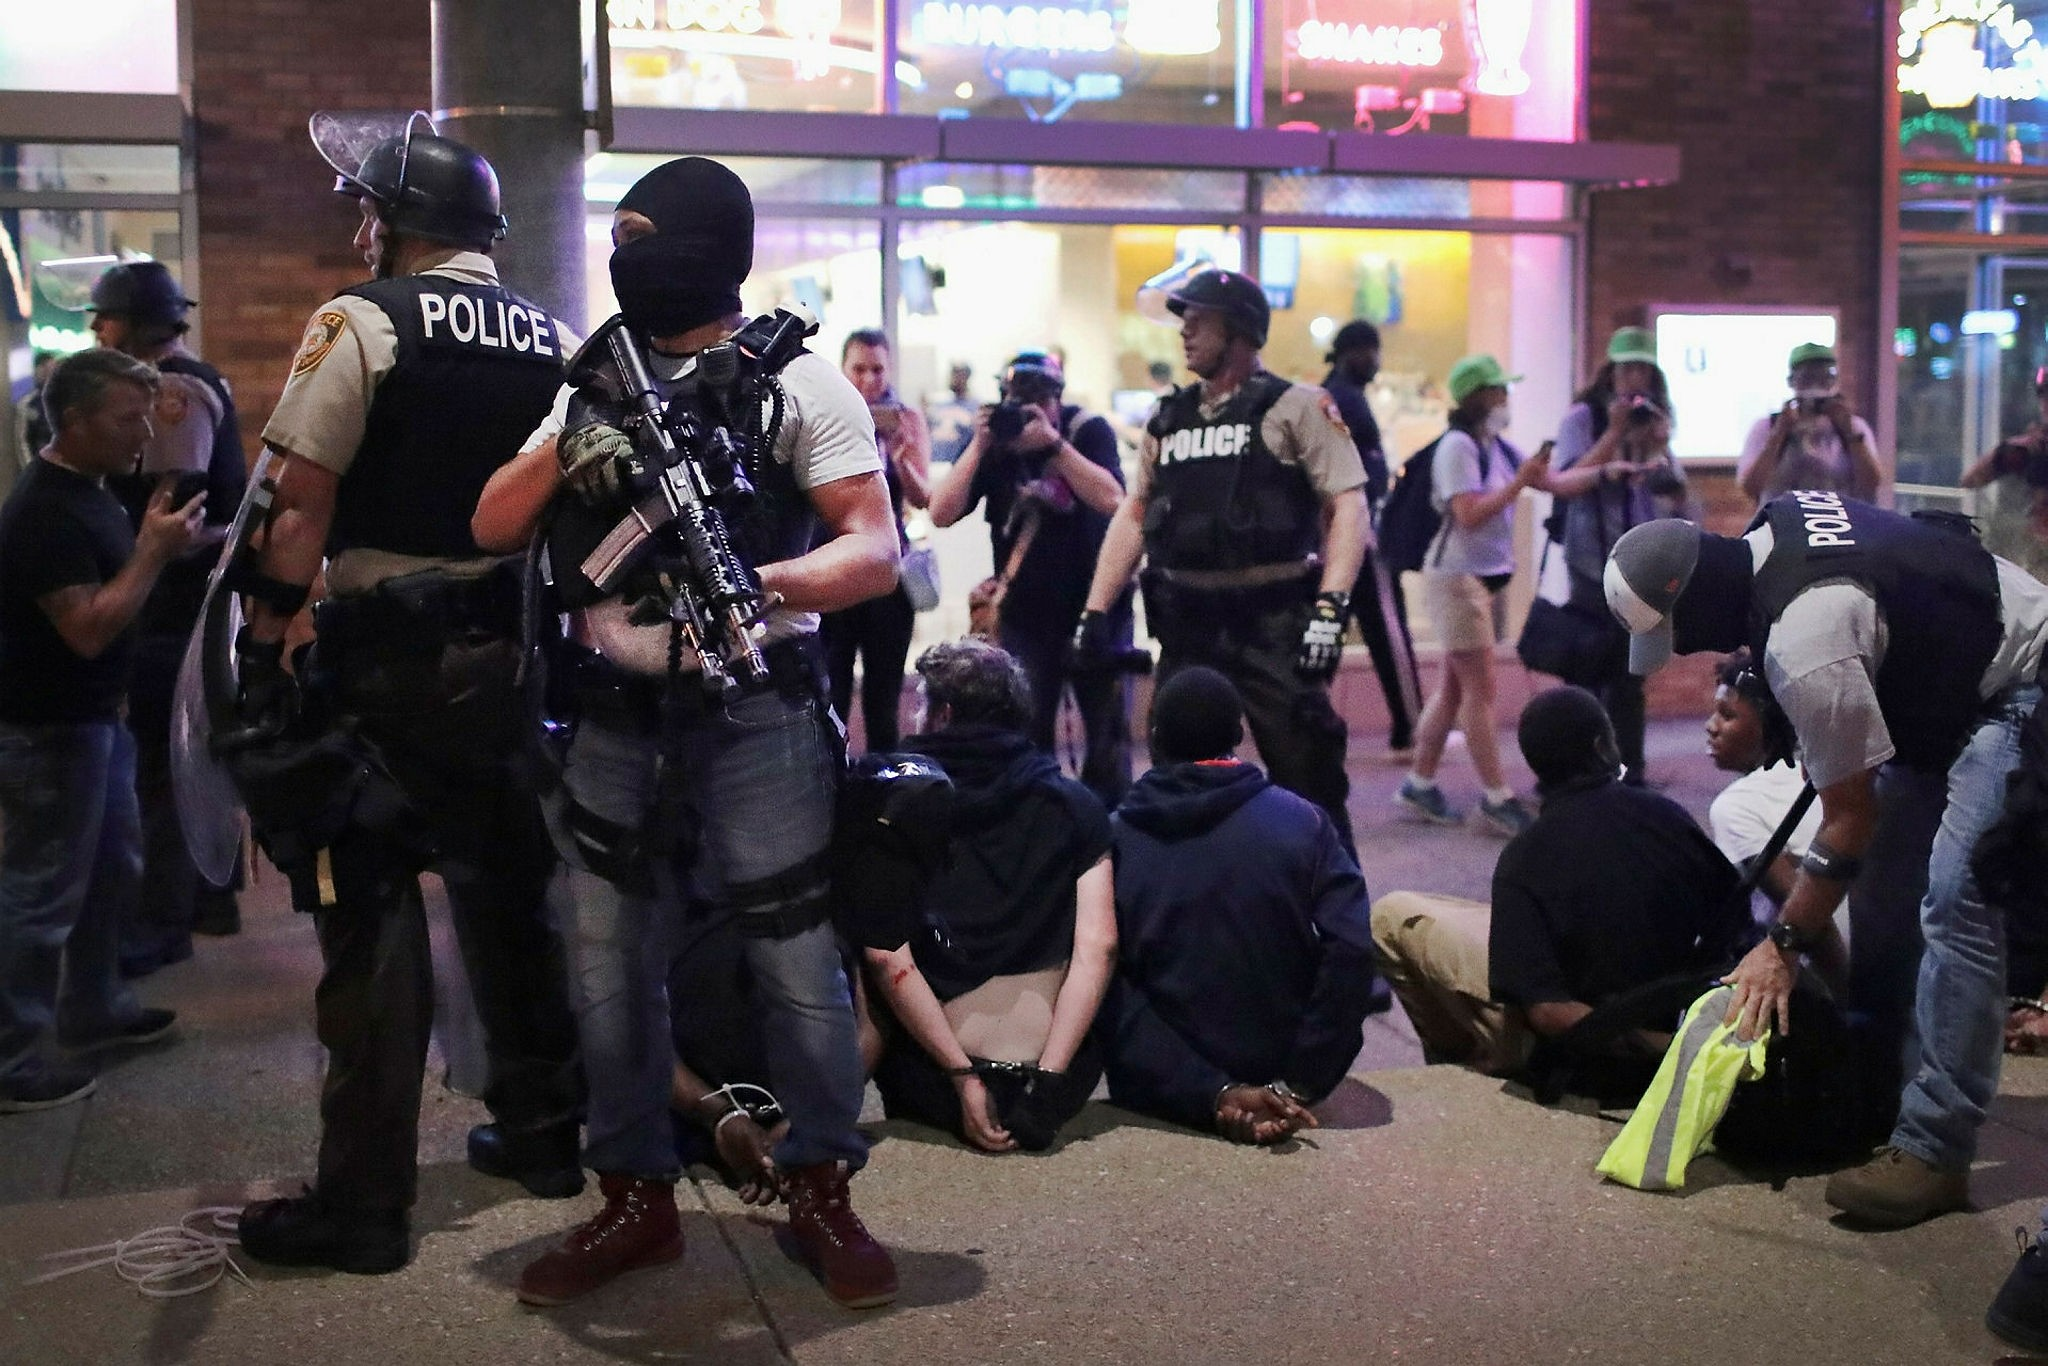 Police arrest demonstrators protesting the acquittal of former St. Louis police officer in Missouri on Sept. 16.